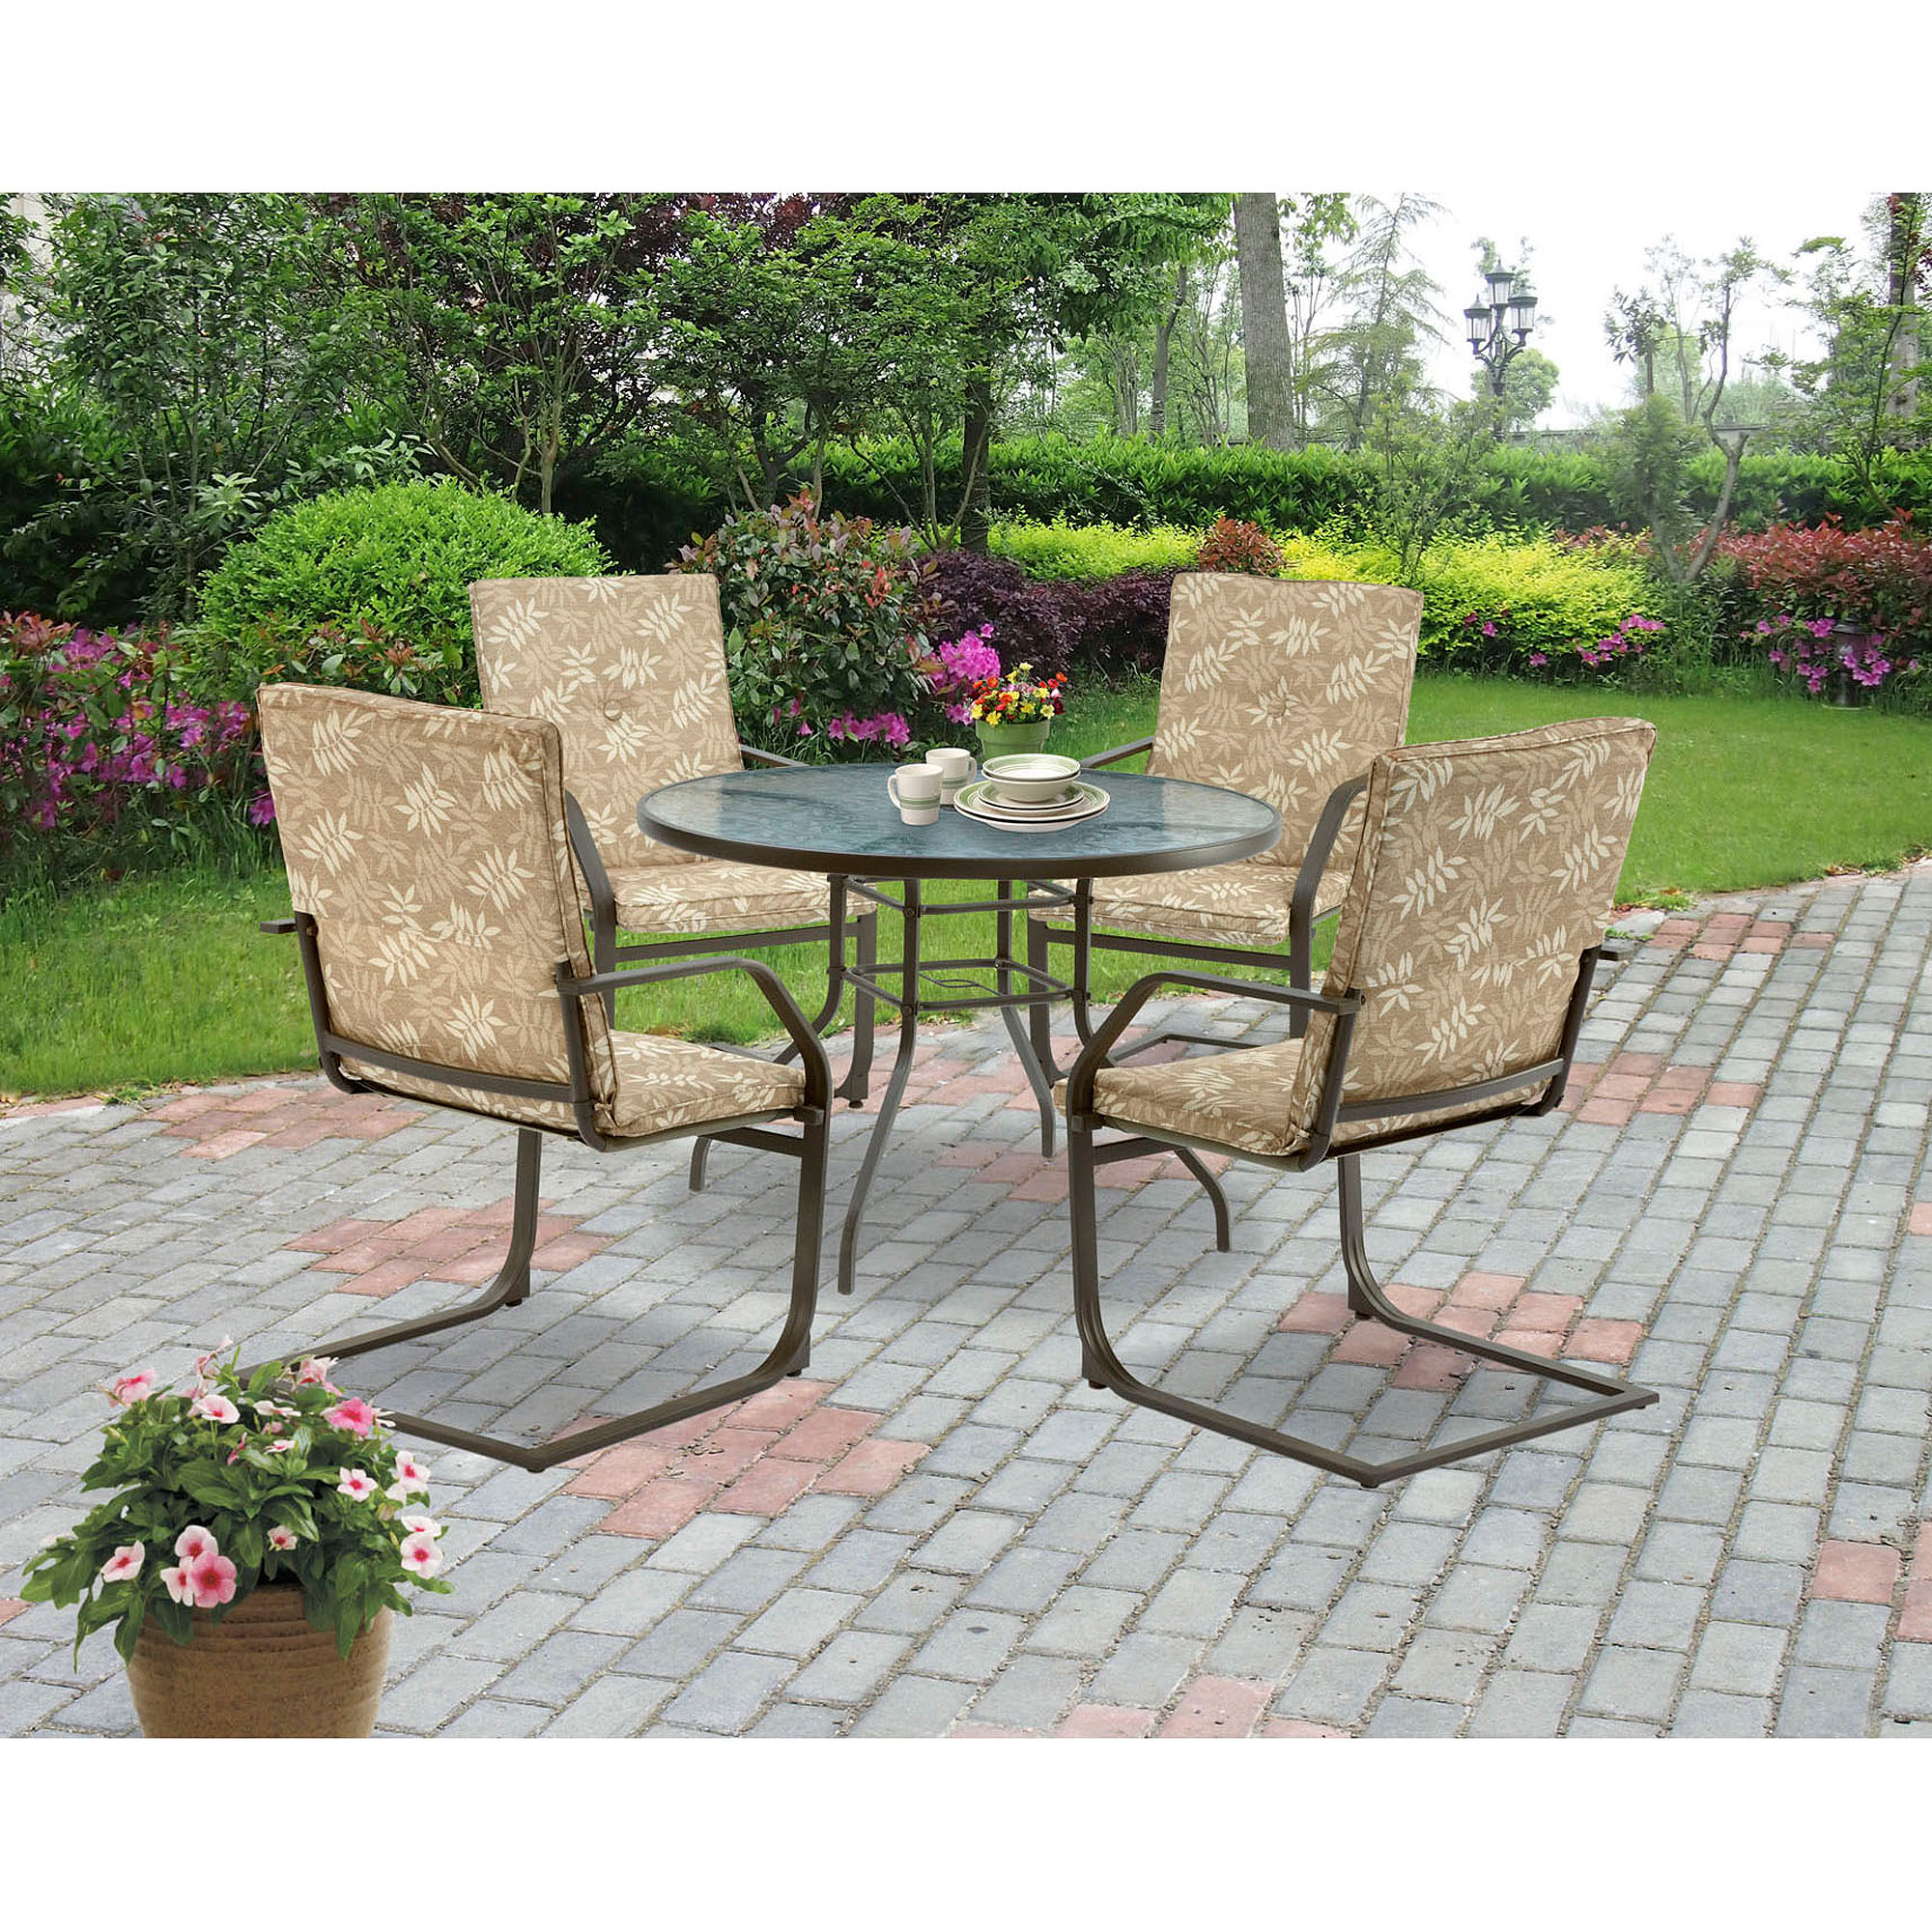 c spring patio chairs elevator for homes mainstays campton 5 piece dining chair walmart com